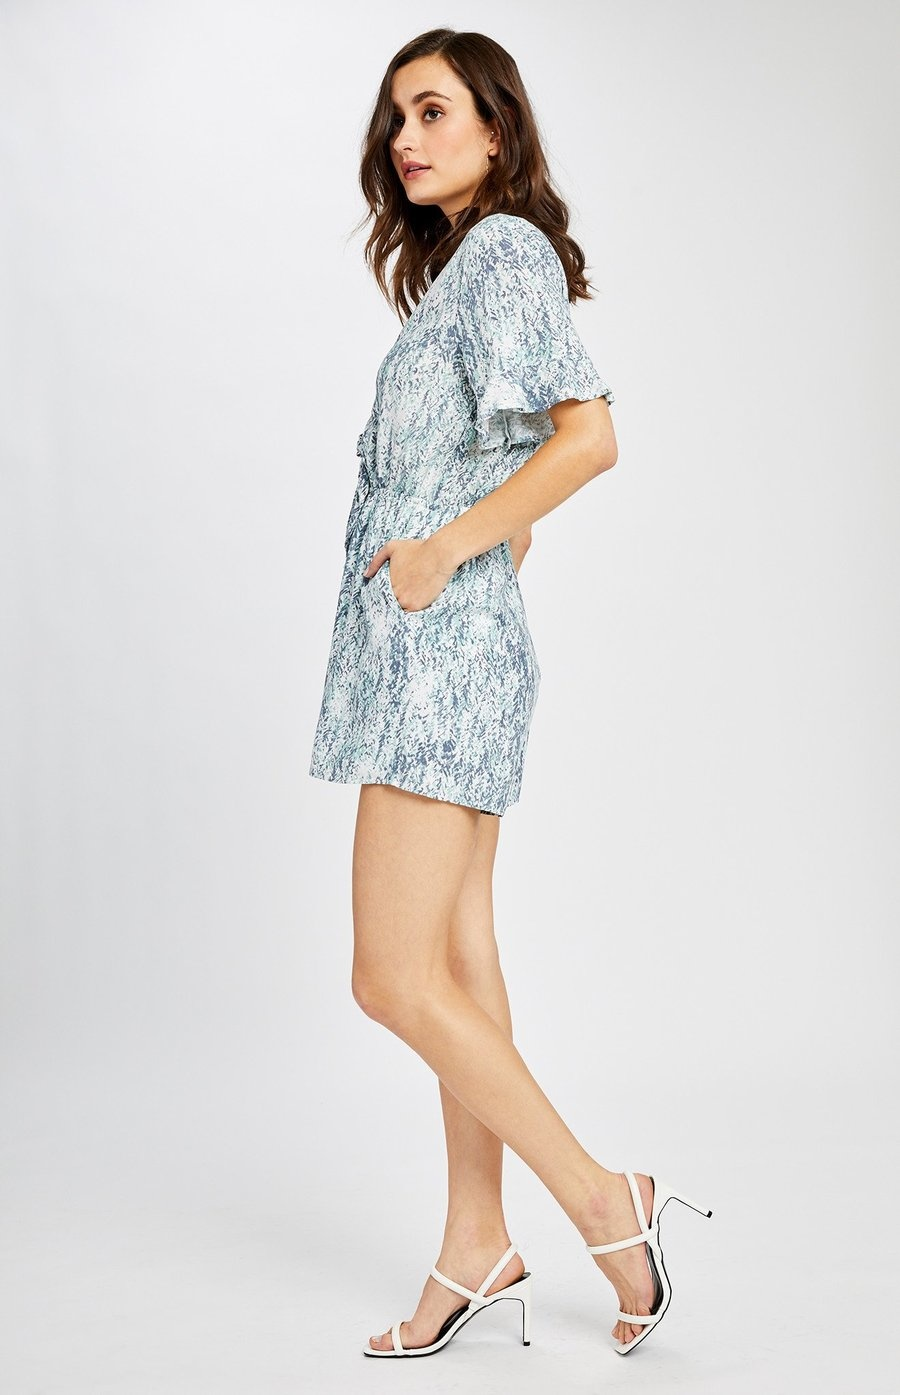 Gentlefawn Astral Romper Navy